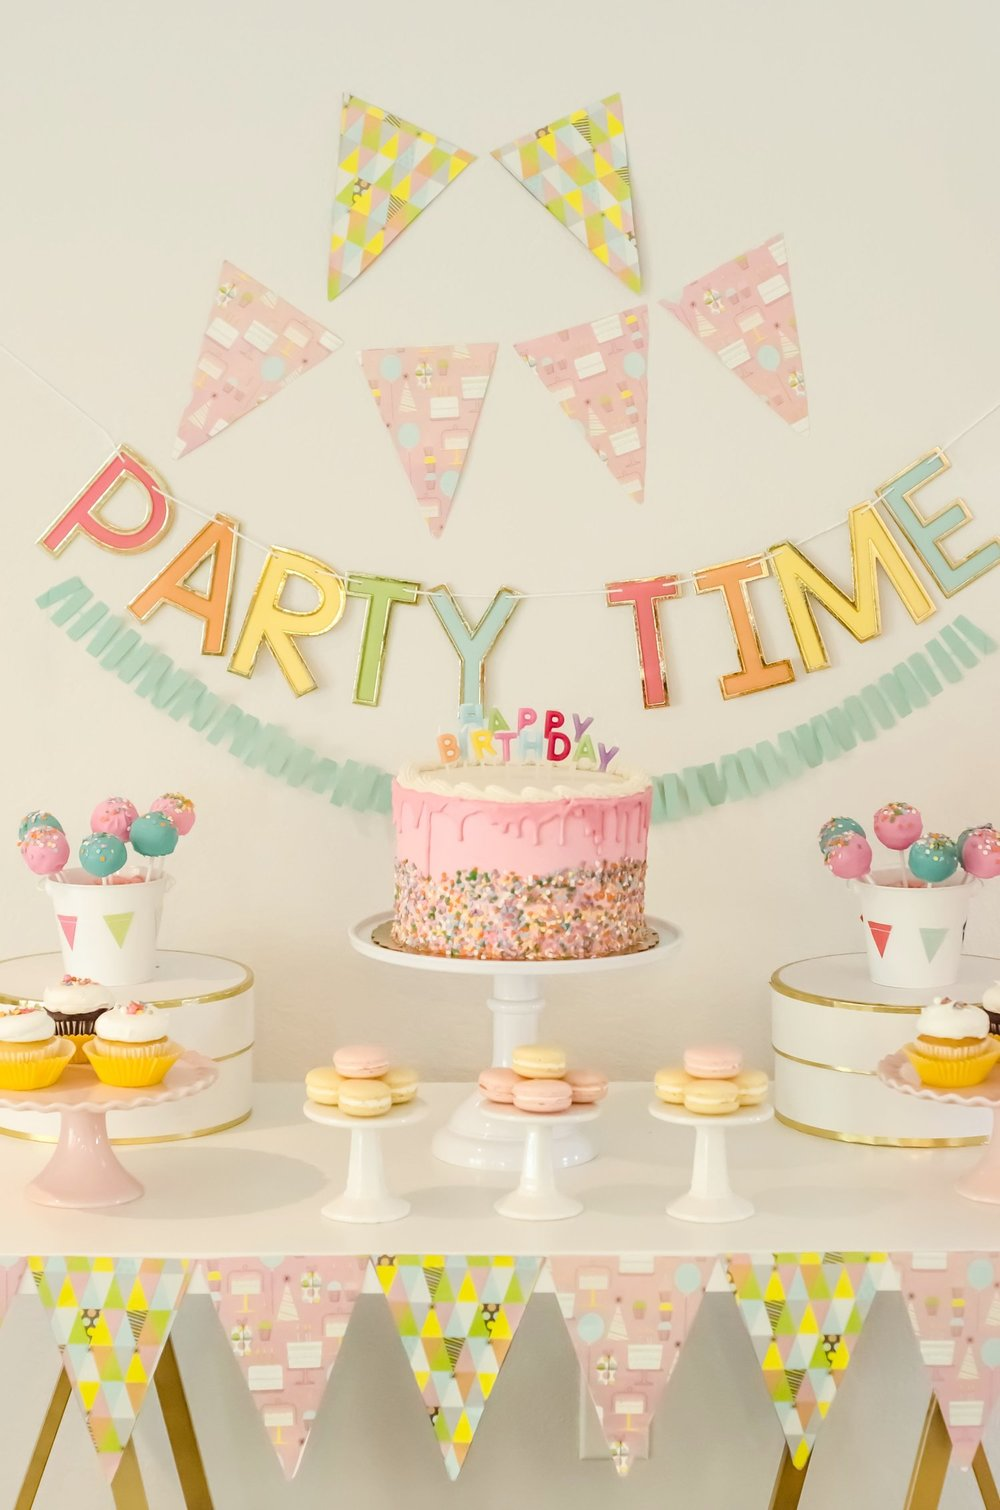 It's Party Time with this girl birthday party dessert table set up - featuring patterned bunting and color matching desserts with a Party Time Banner / Click to see even more surprising ways to greet your guests at a Birthday Party / Styled by Carolina from MINT Event Design / www.minteventdesign.com #birthdayparty #partyideas #partyinspiration #partydesserts #cakepops #partydessert #desserttable #partybanners #birthdaycake